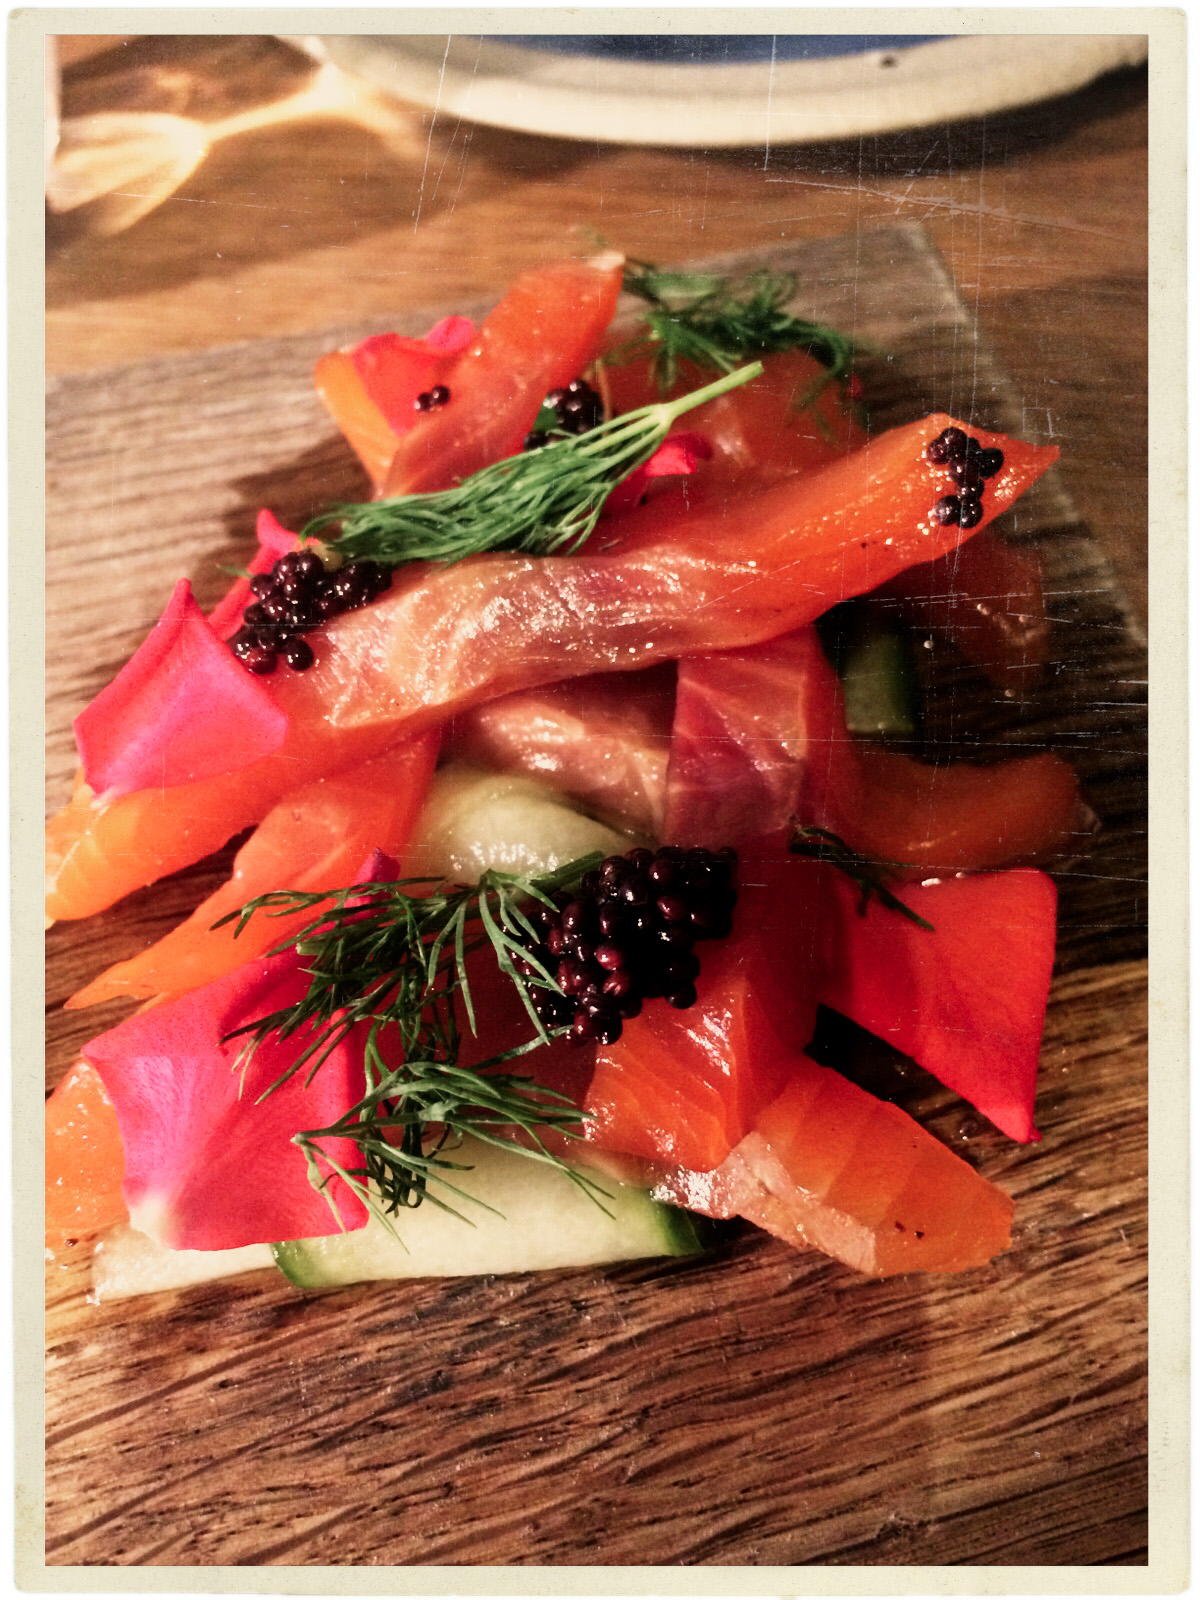 Our lucky find: Rabbit, a fab restaurant in Chelsea. Cured trout. Delicious.